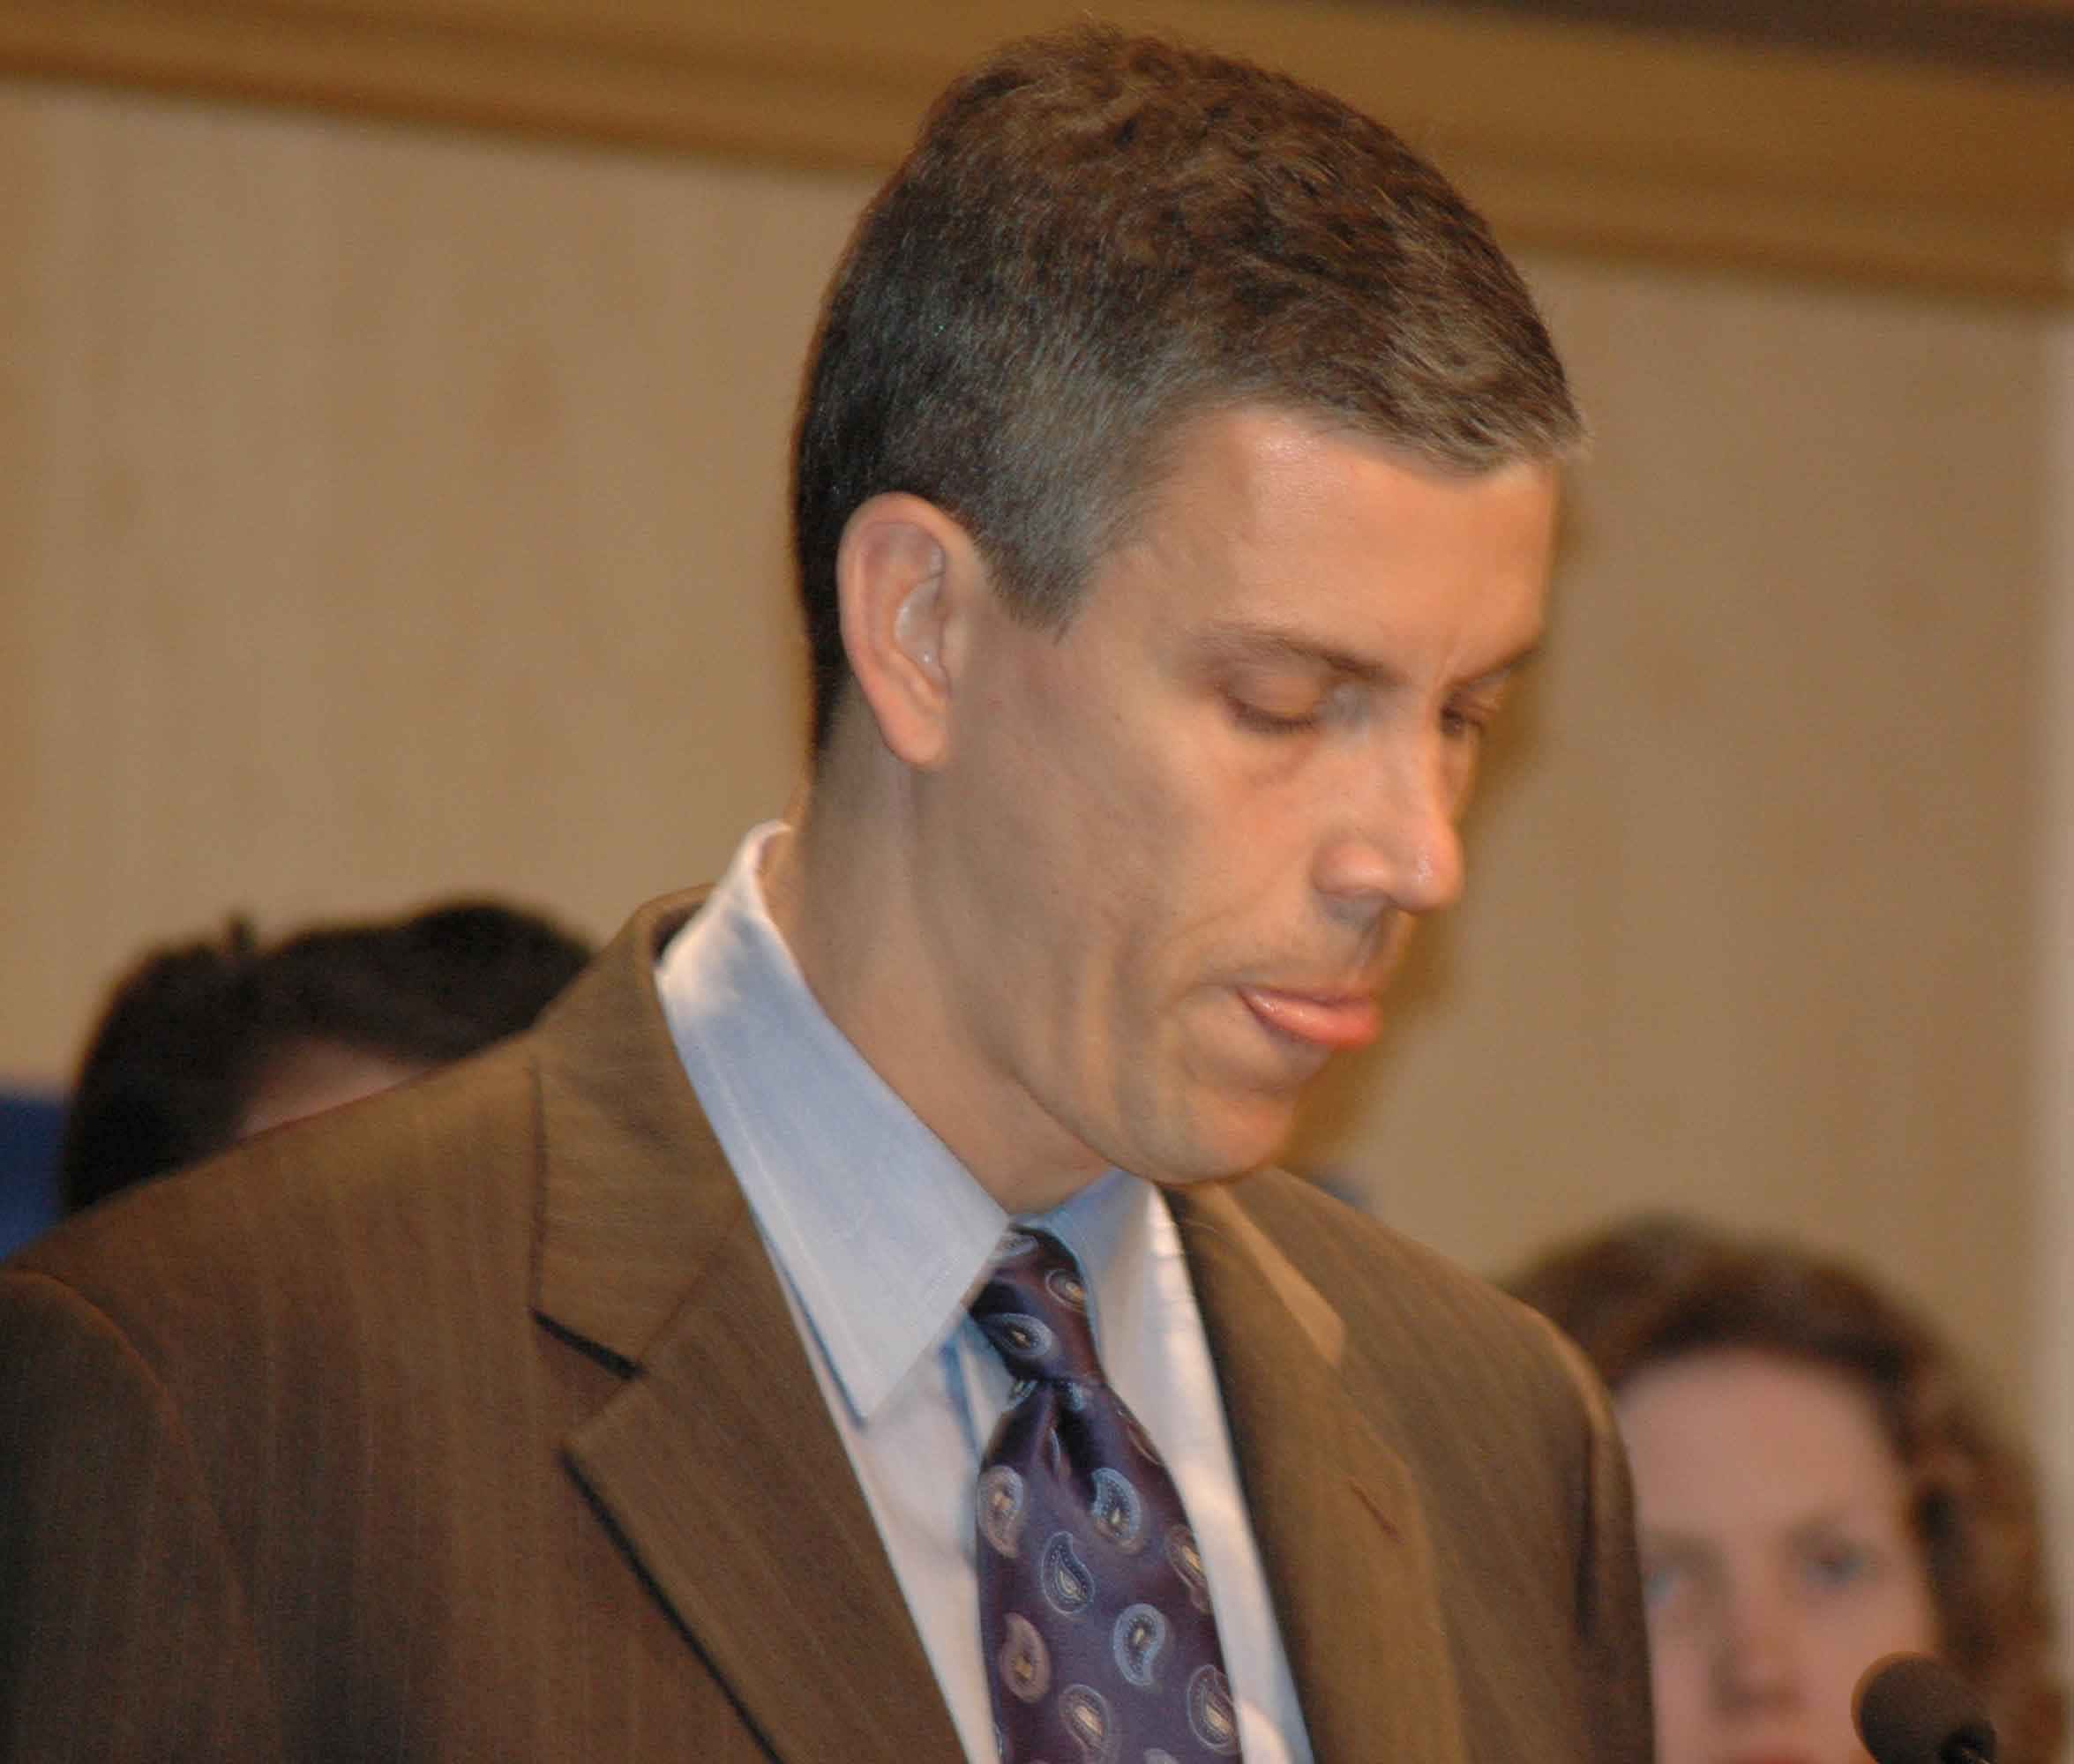 "On February 14, 2008, CEO Arne Duncan held a press conference (above) to tell the press that, once again, he was going to be cutting ""administration"" because the Board of Education was facing a ""deficit"". Because CPS did not have any reasonable budget figures to provide to the press at the time, most of the story was deferred until June 2008, when the administration is legally required to present a proposed budget to the public for public hearings. Again this year, instead of providing a proposed budget to the public, in June 2008 Duncan arranged to delay the budget presentation and hosted another media event. On May 28, the day the Board of Education was supposed to meet, Duncan left town for Springfield, and the ""May"" meeting was rescheduled for June. Substance photo by George Schmidt."